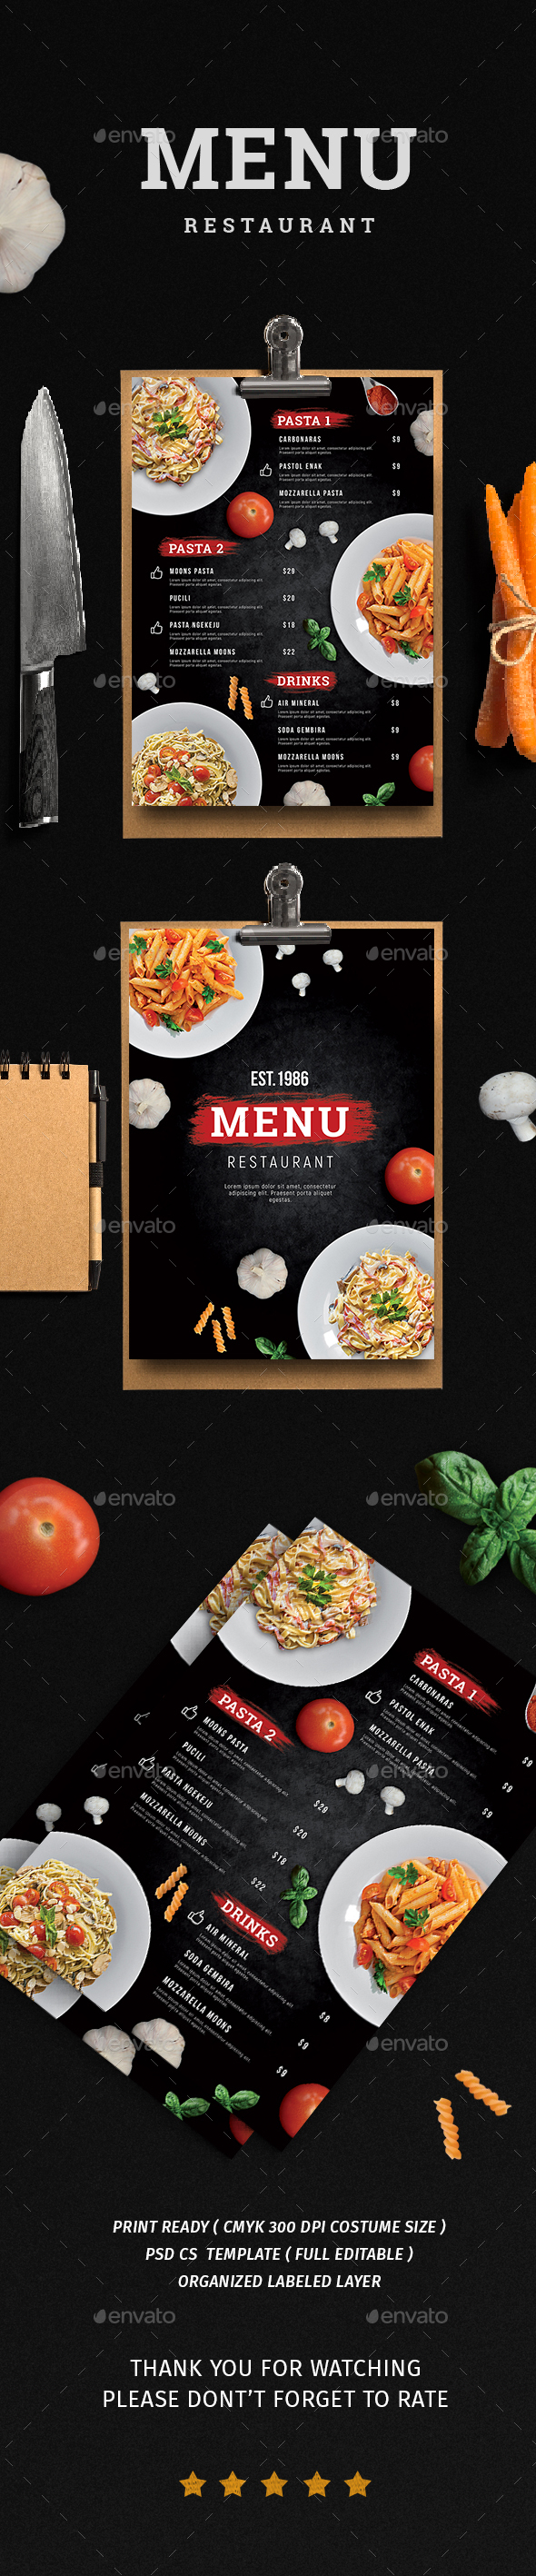 Menu Restaurant - Restaurant Flyers